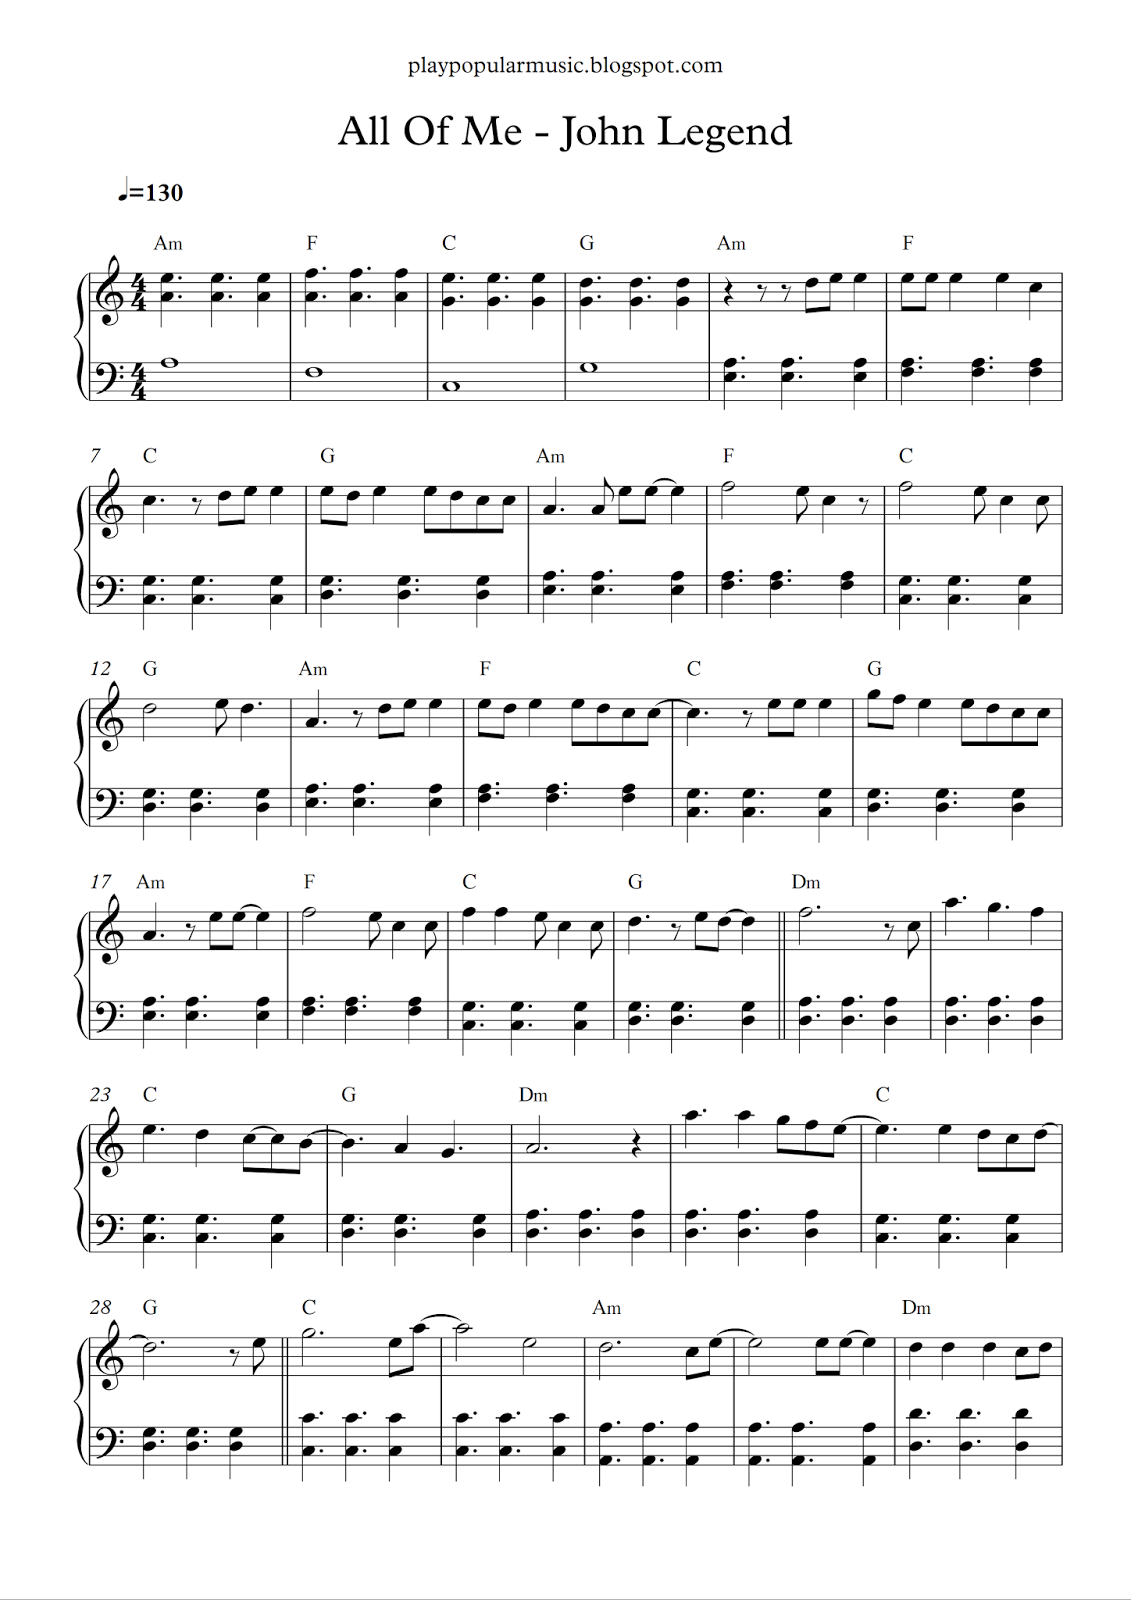 picture about All of Me Easy Piano Sheet Music Free Printable referred to as Free of charge piano sheet audio: All of me - John Legend.pdf Whats